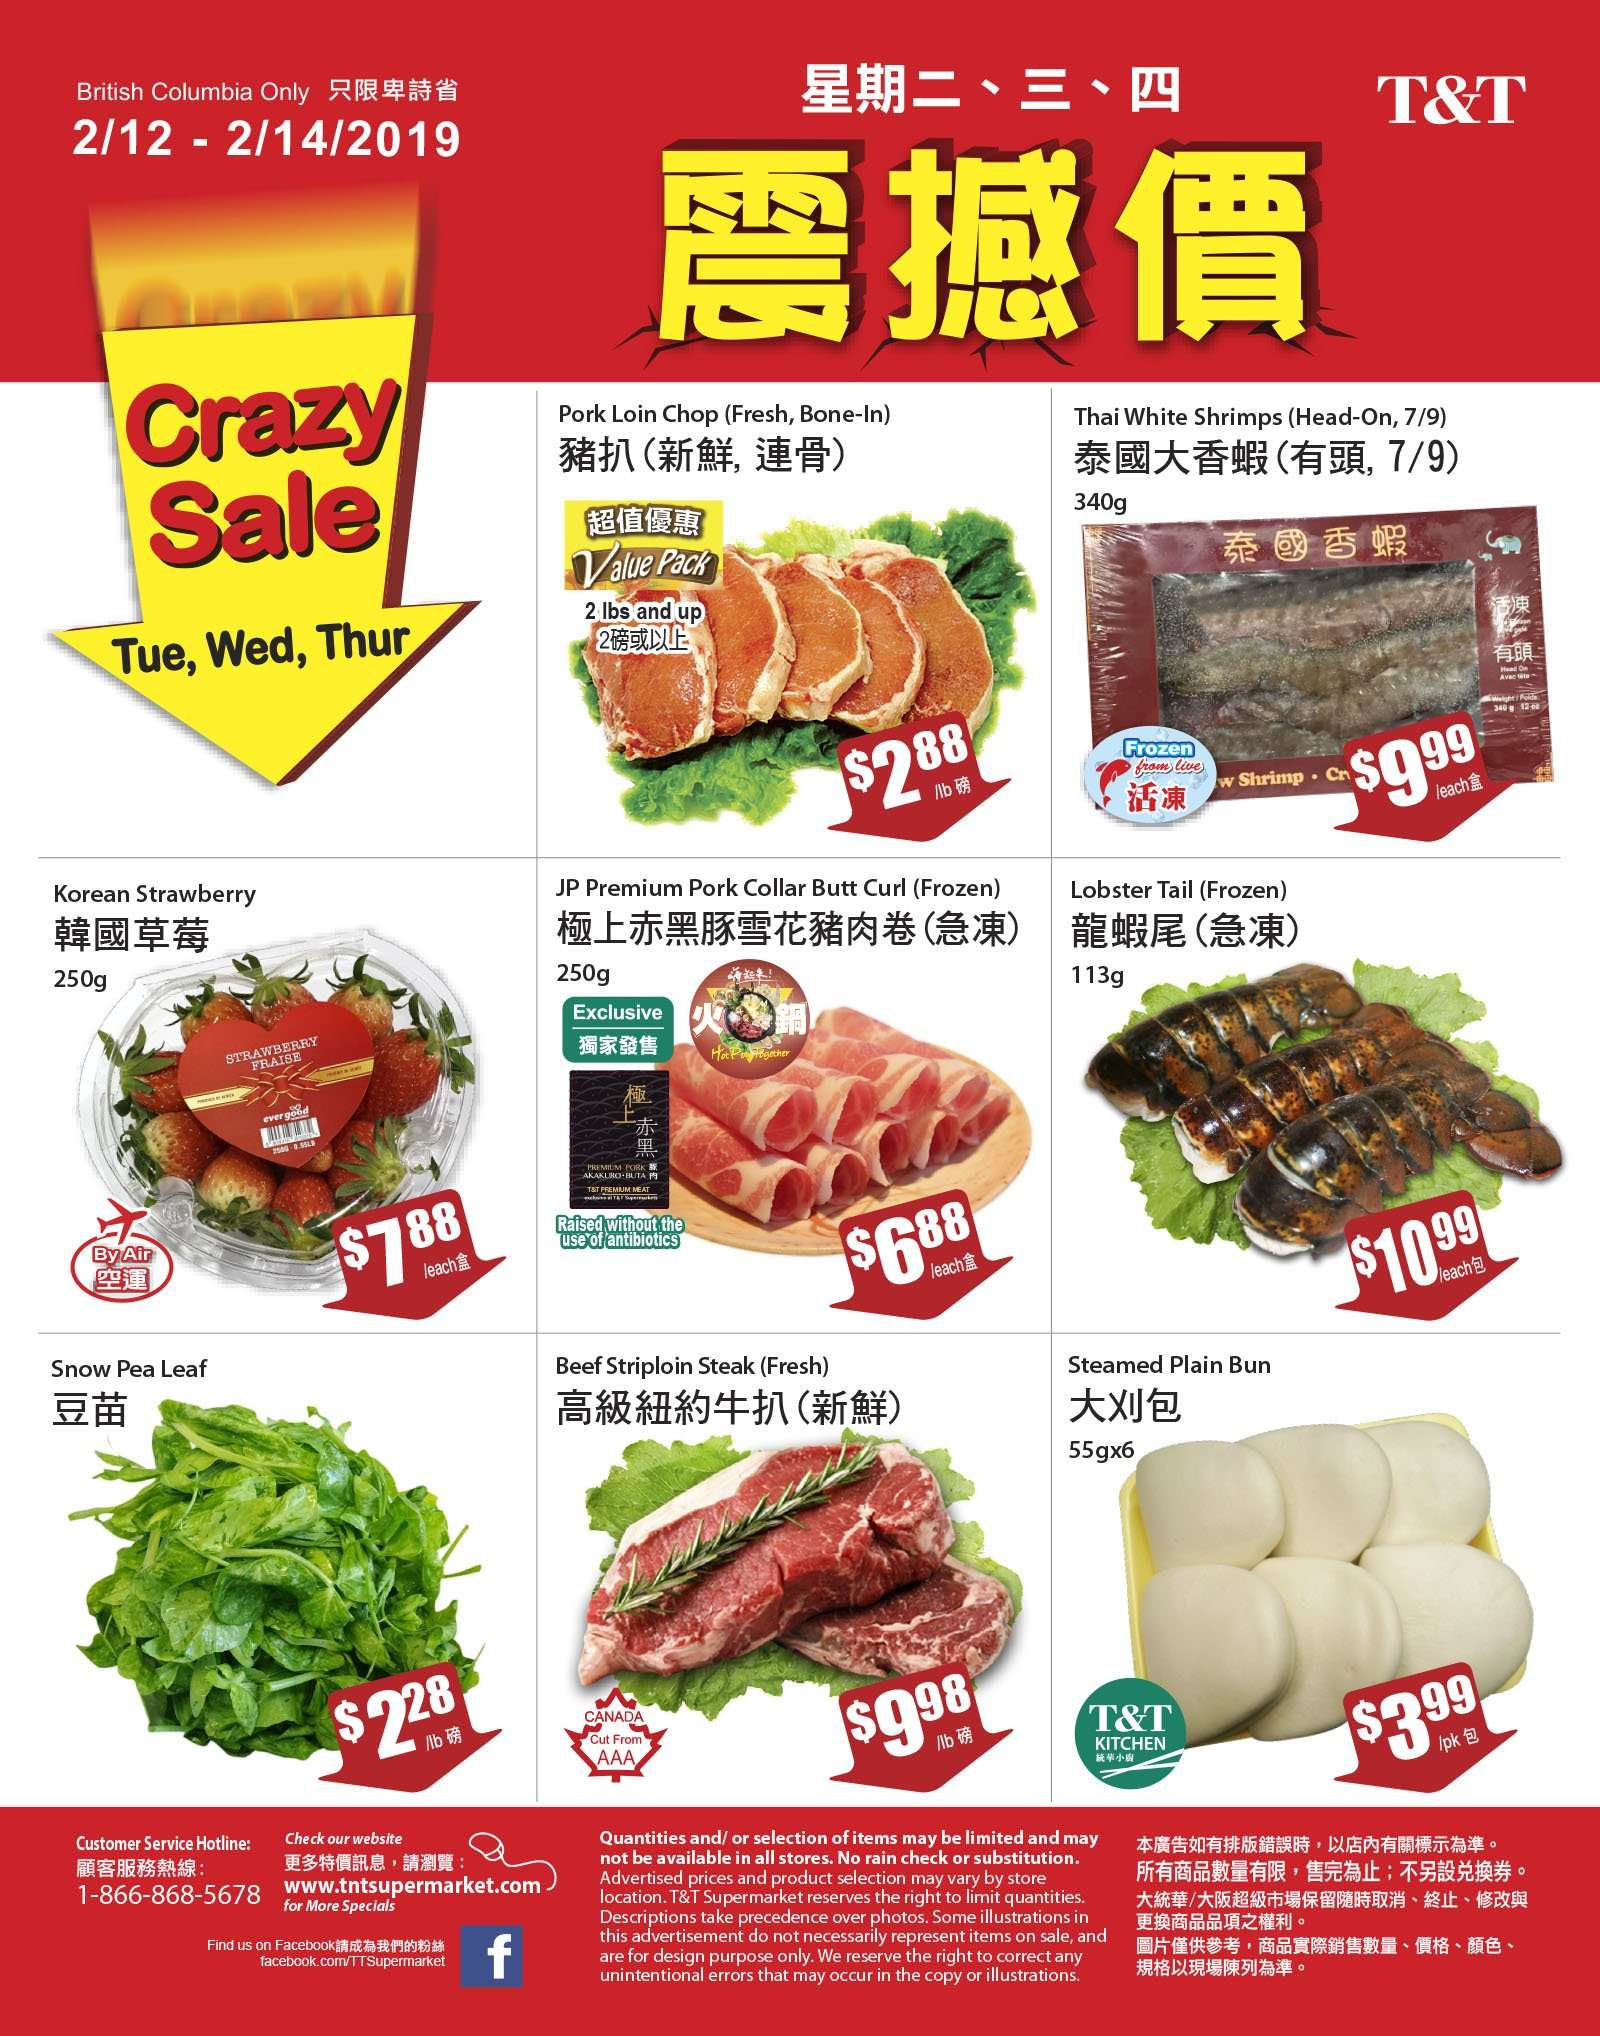 T&T Supermarket Flyer - February 12, 2019 - February 14, 2019 - Sales products - beef meat, columbia, fa, frozen, lobster, shrimp, tong, pin, pork loin, pork meat, steak, strawberry, photo. Page 1.